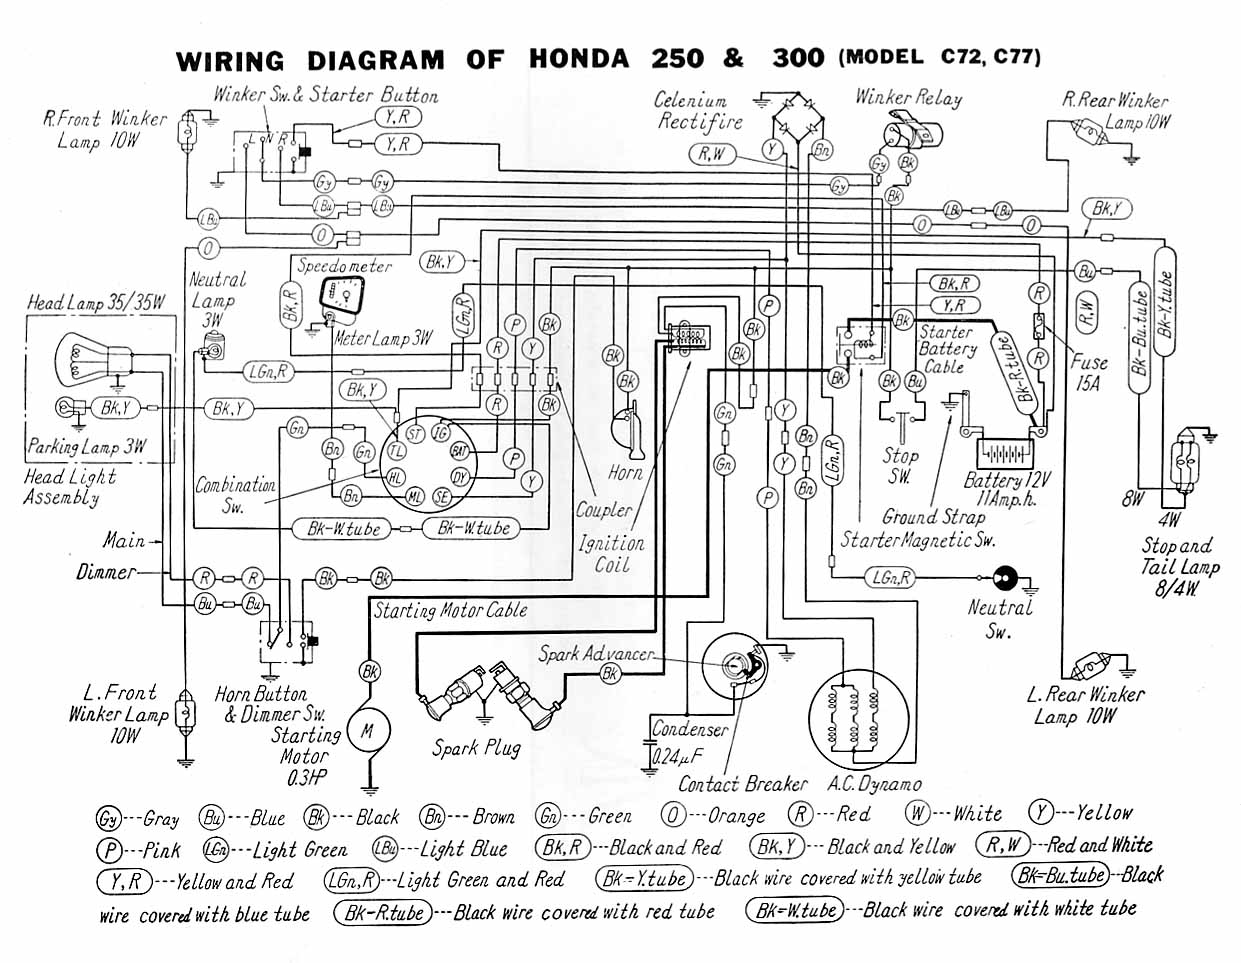 honda 250 wiring diagram wiring diagram honda fourtrax wiring honda 2000 Honda Accord Electrical Schematics honda rebel wiring diagram wiring diagrams and schematics honda rebel 250 diagram image about wiring